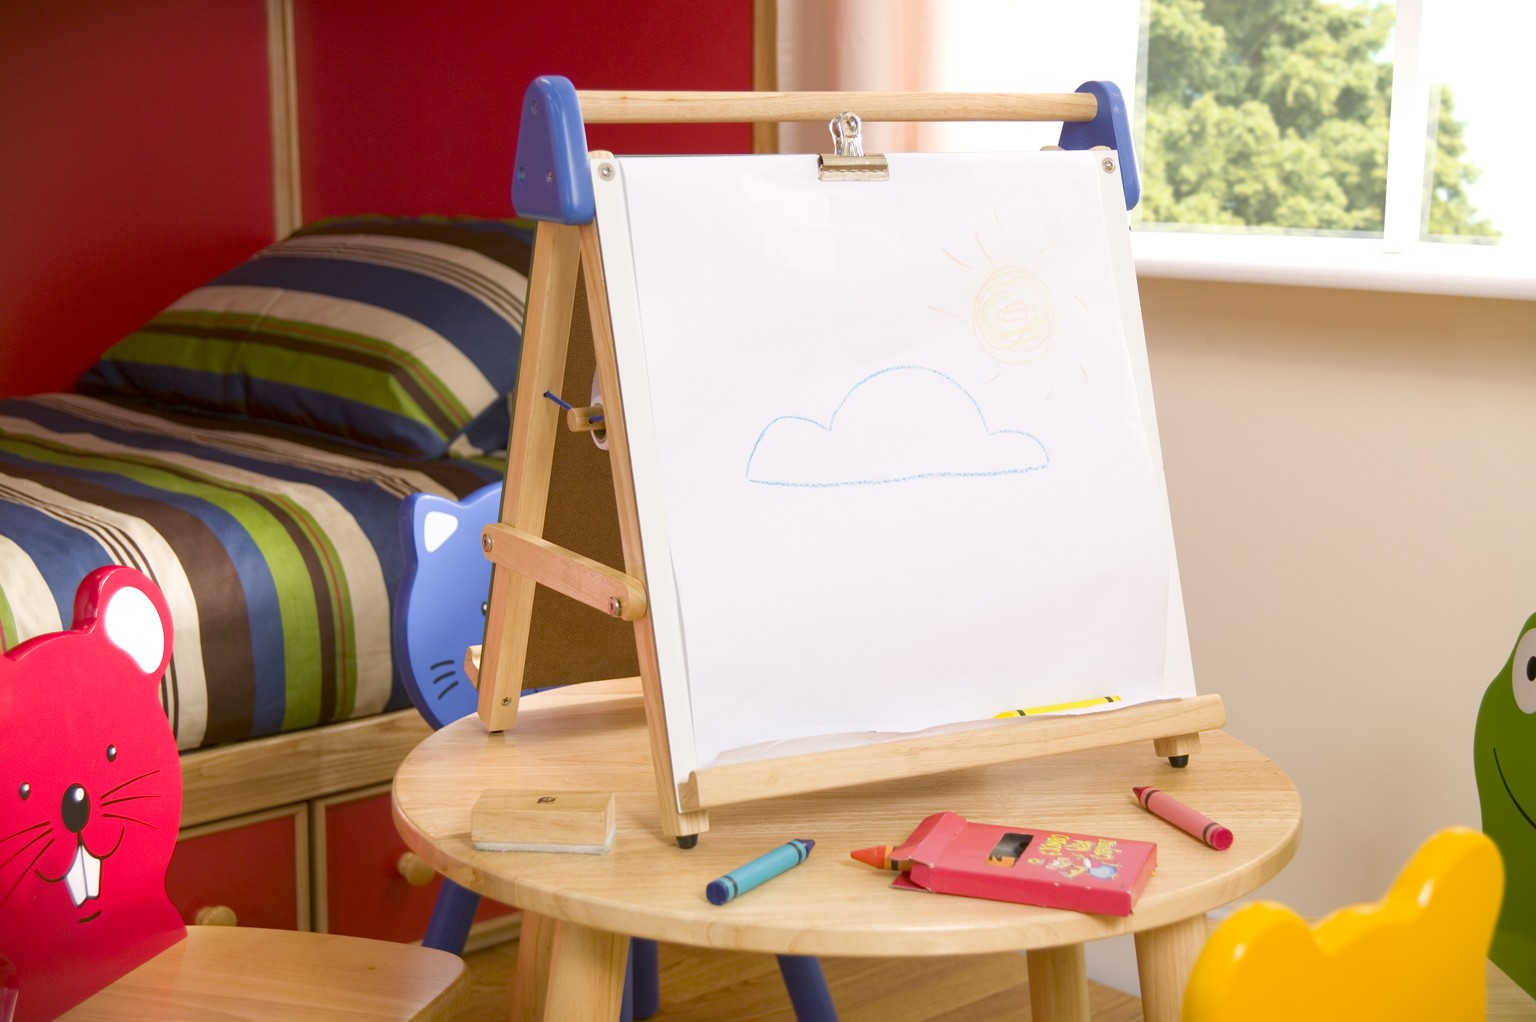 Tabletop Magnetic Easel and Chalkboard